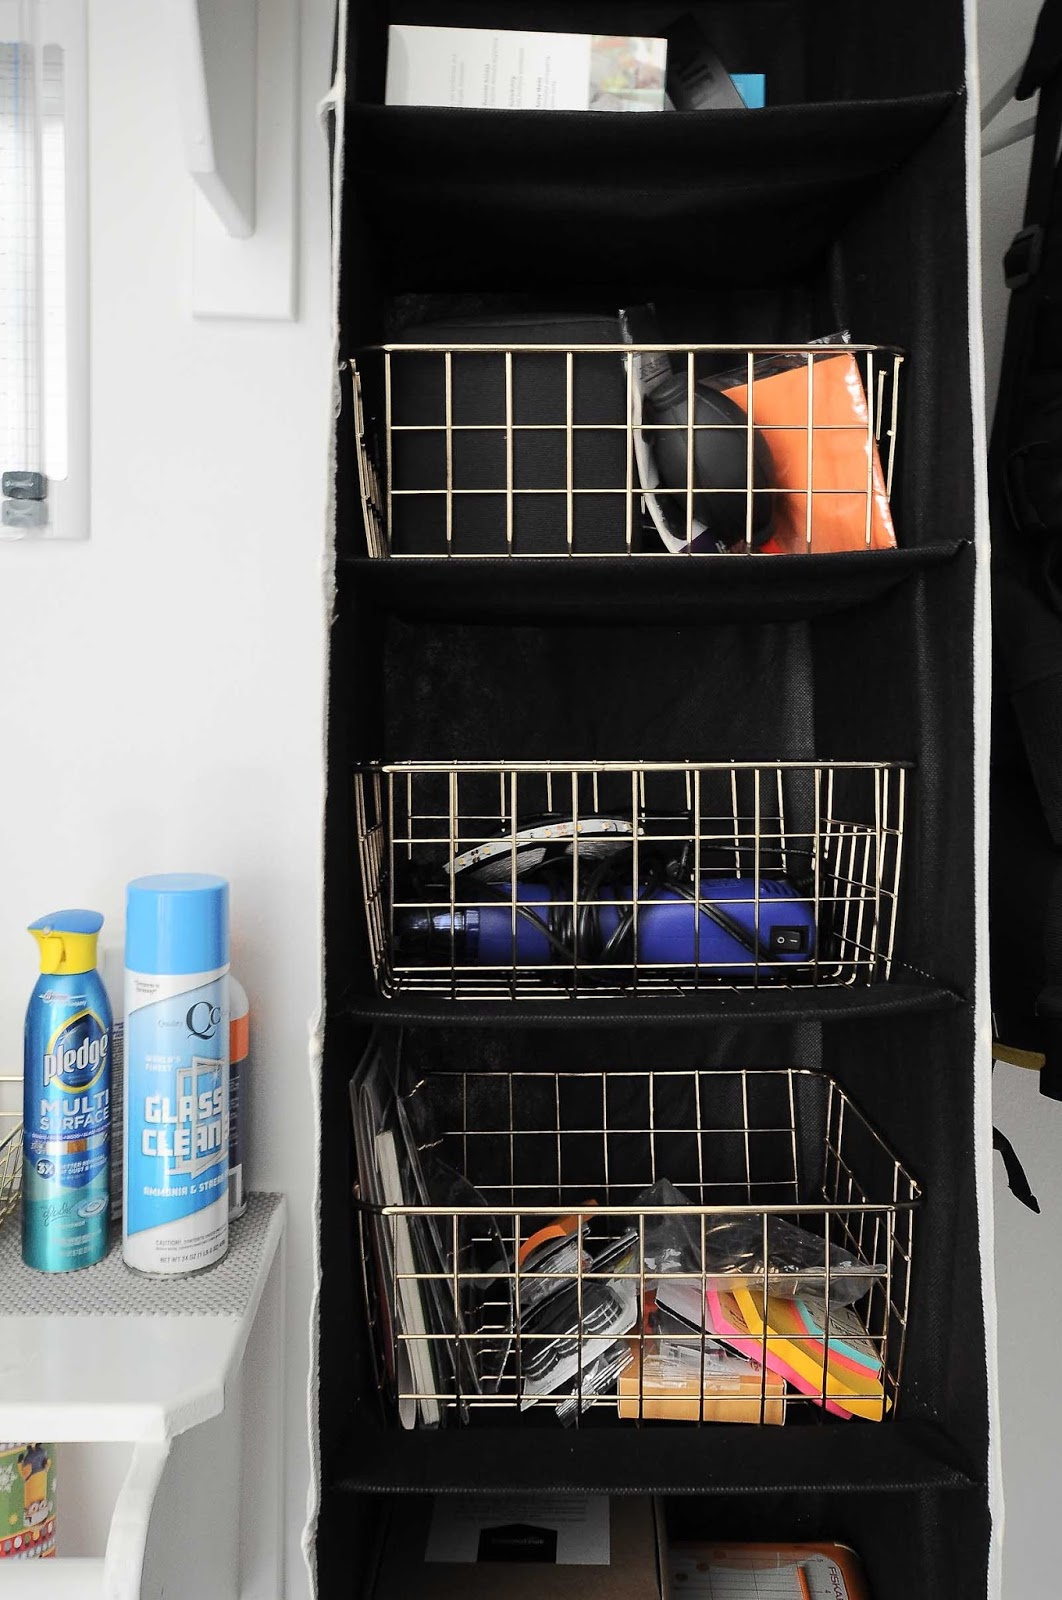 Genius! Use a shoe organizer as a way to store craft and office supplies in a home office closet.